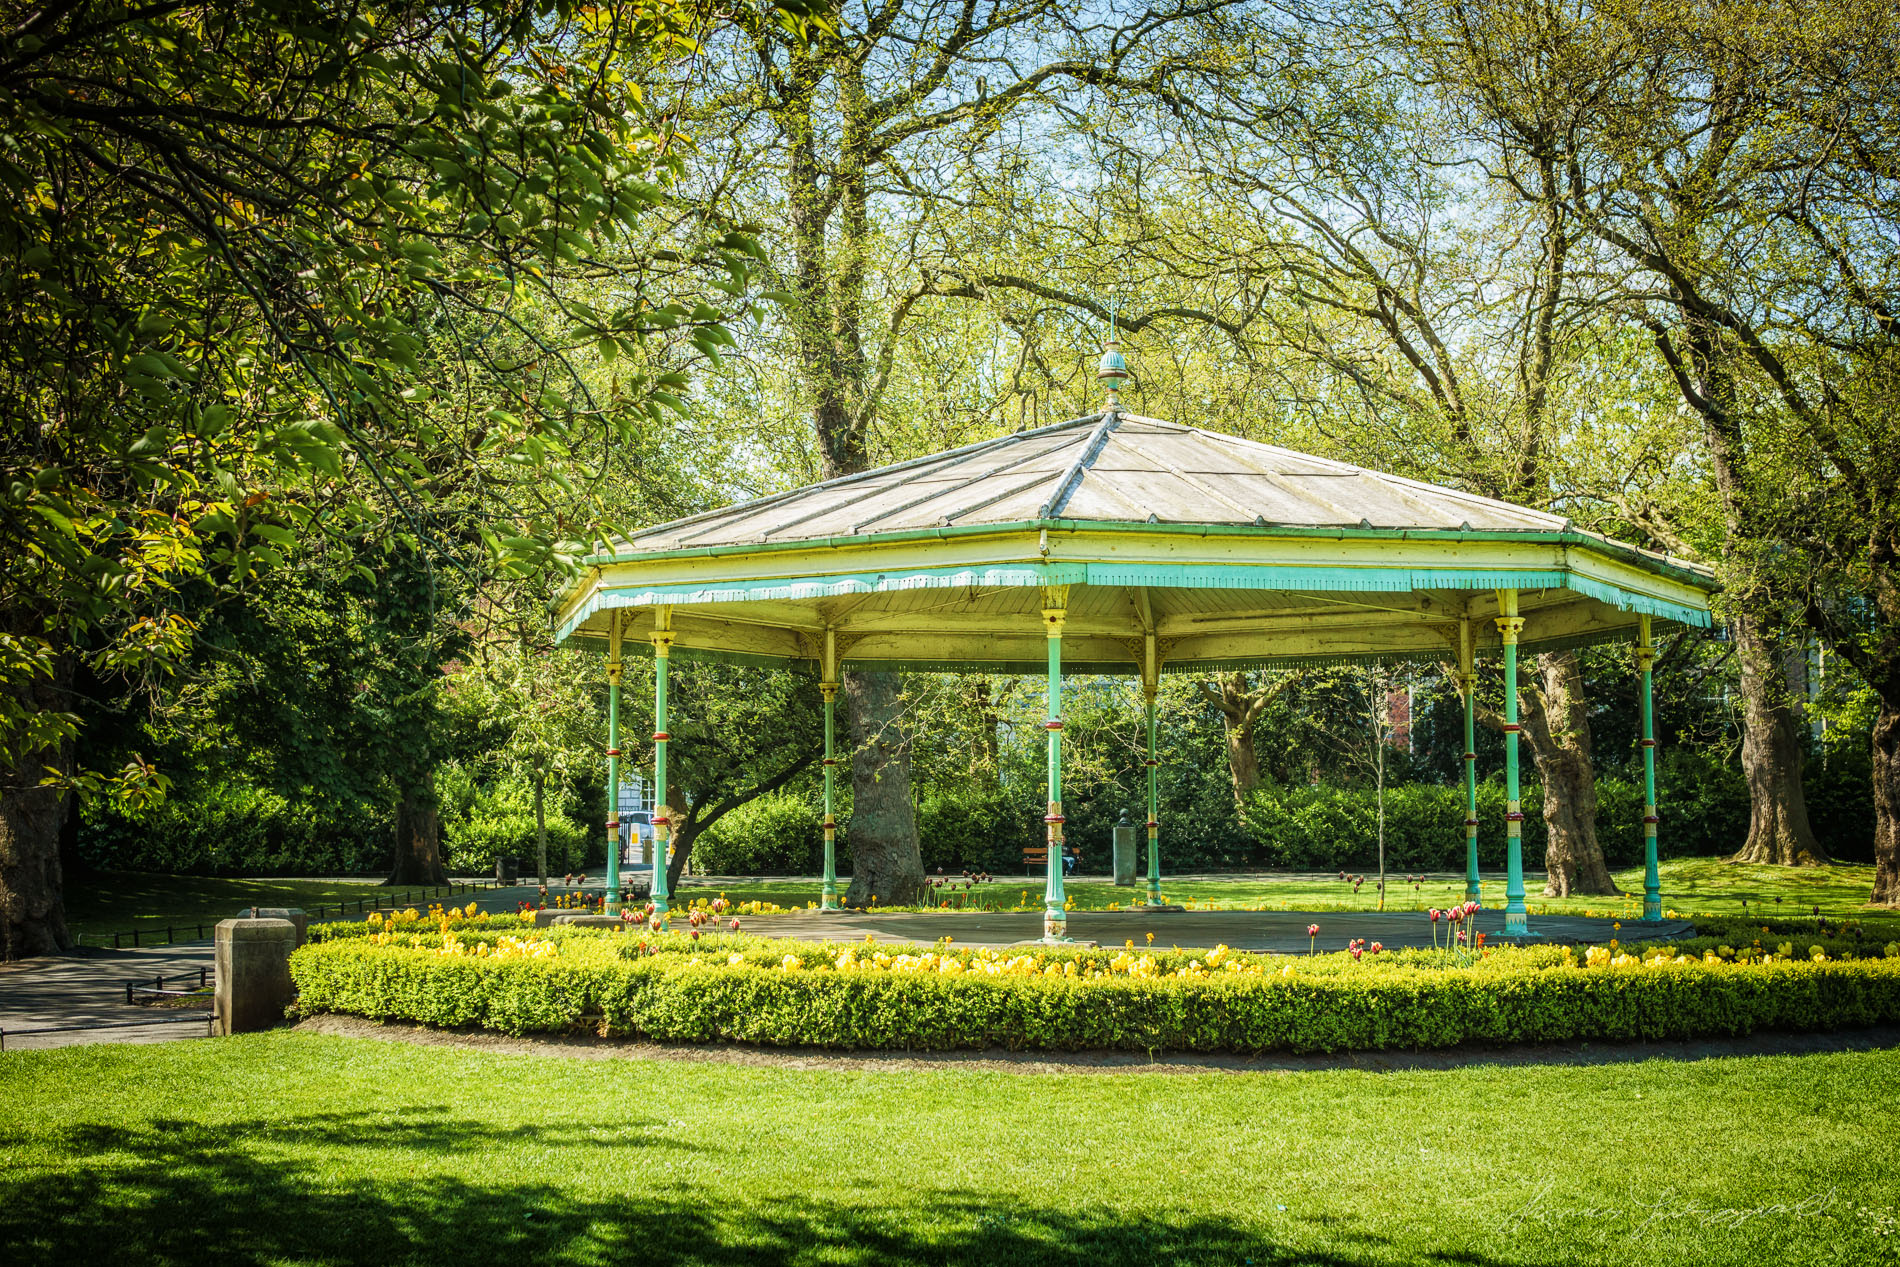 Stephen's Green Bandstand